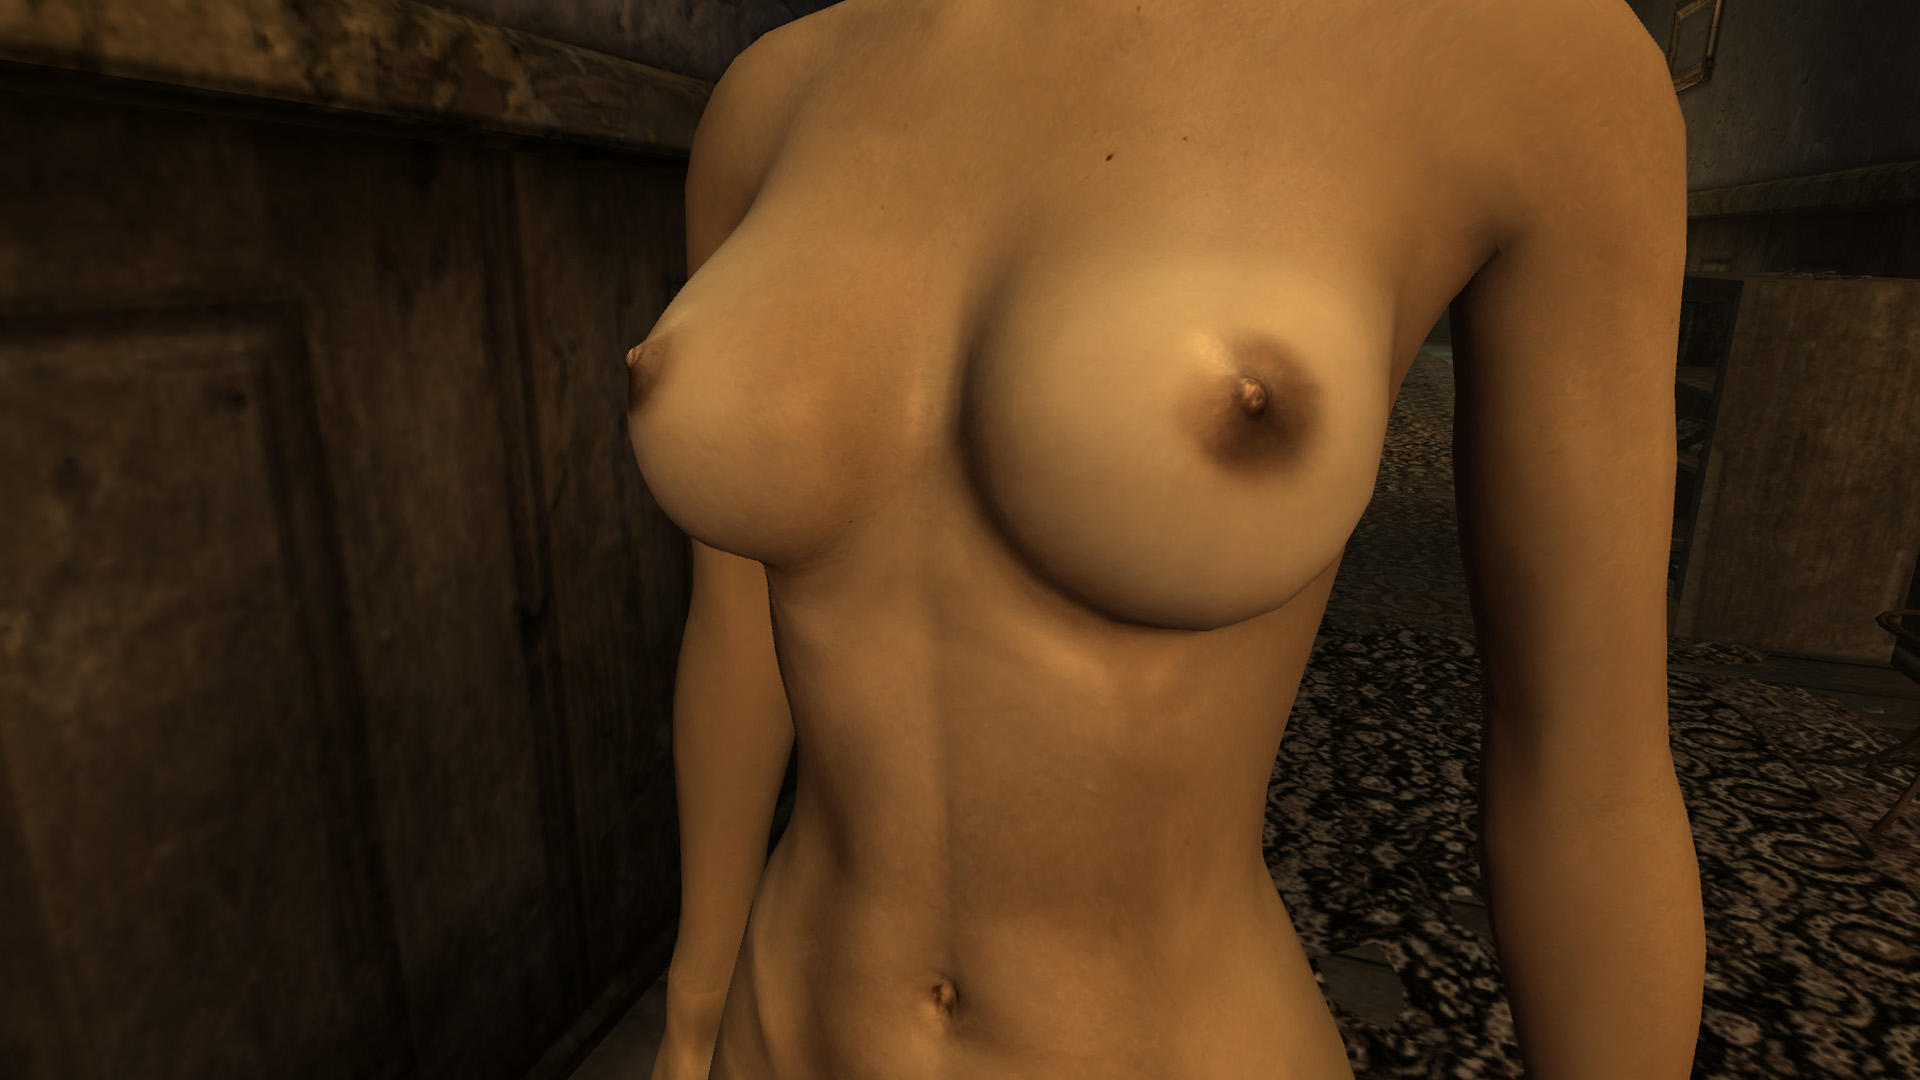 Fall out new vegas sex porncraft images